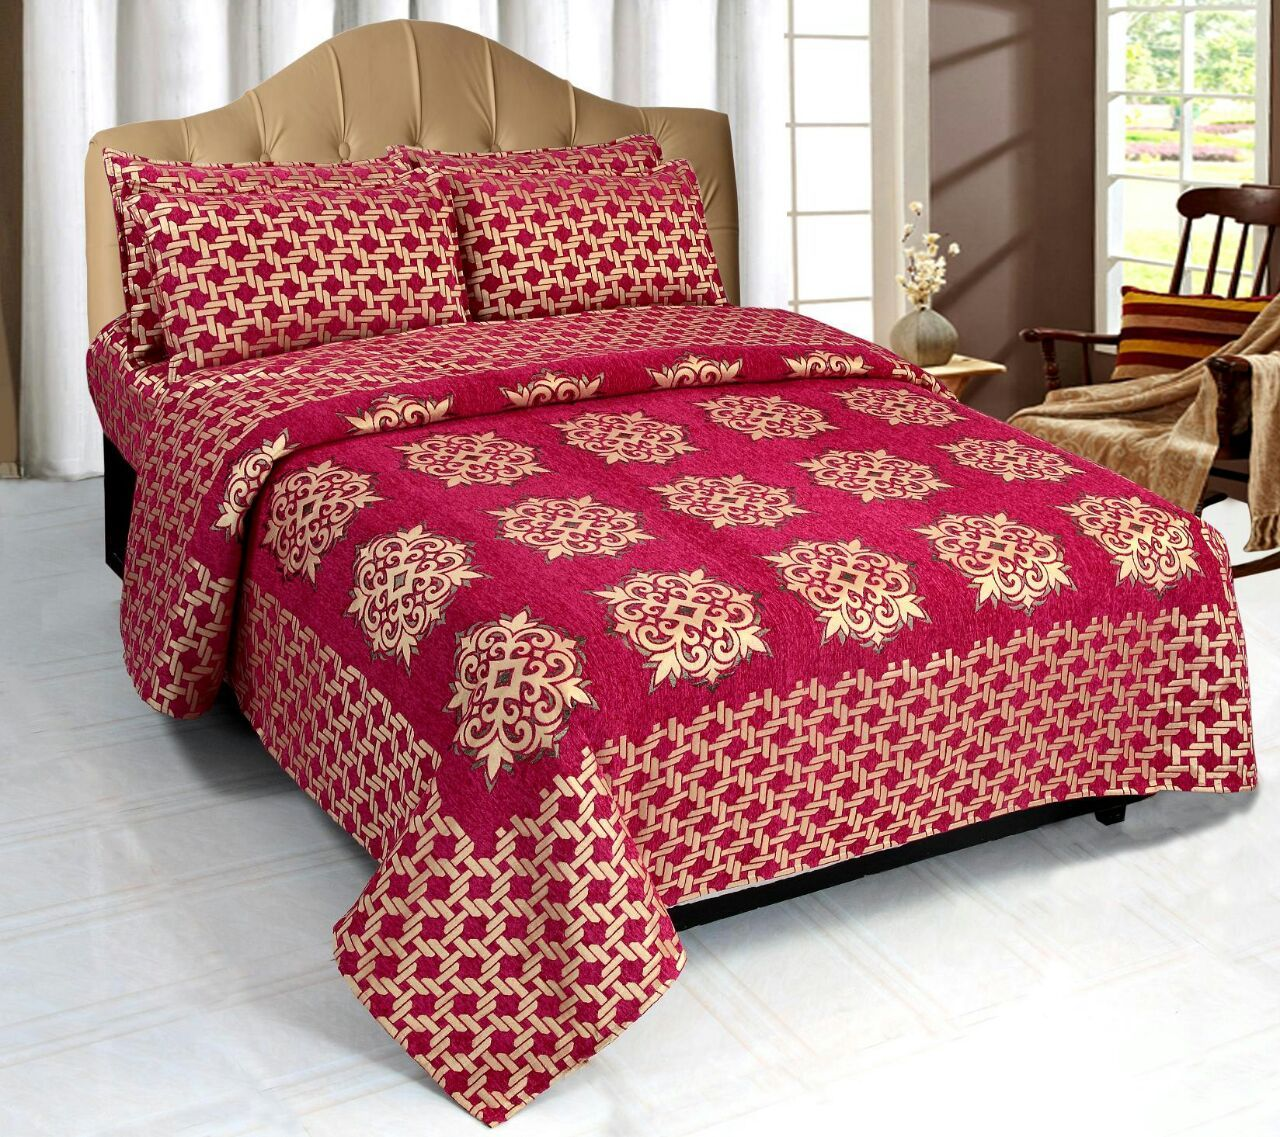 Network of Spades Chenille Bedcovers - B